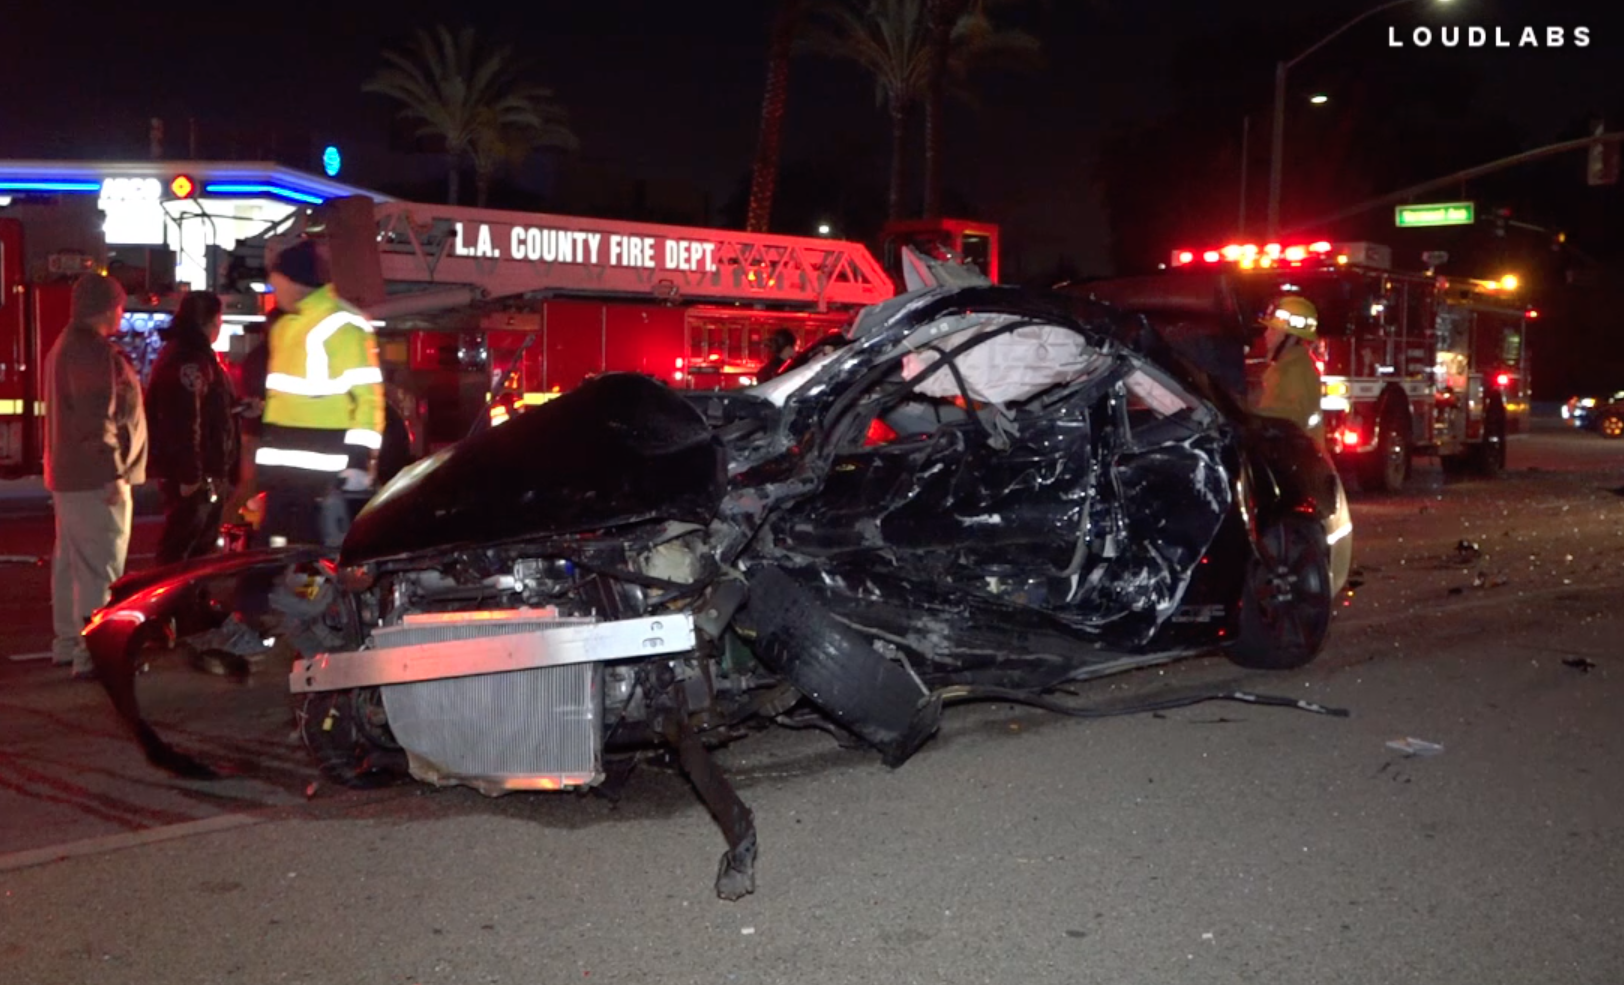 A deadly collision in Gardena left a vehicle mangled on Dec. 29, 2019. (Credit: Loudlabs)